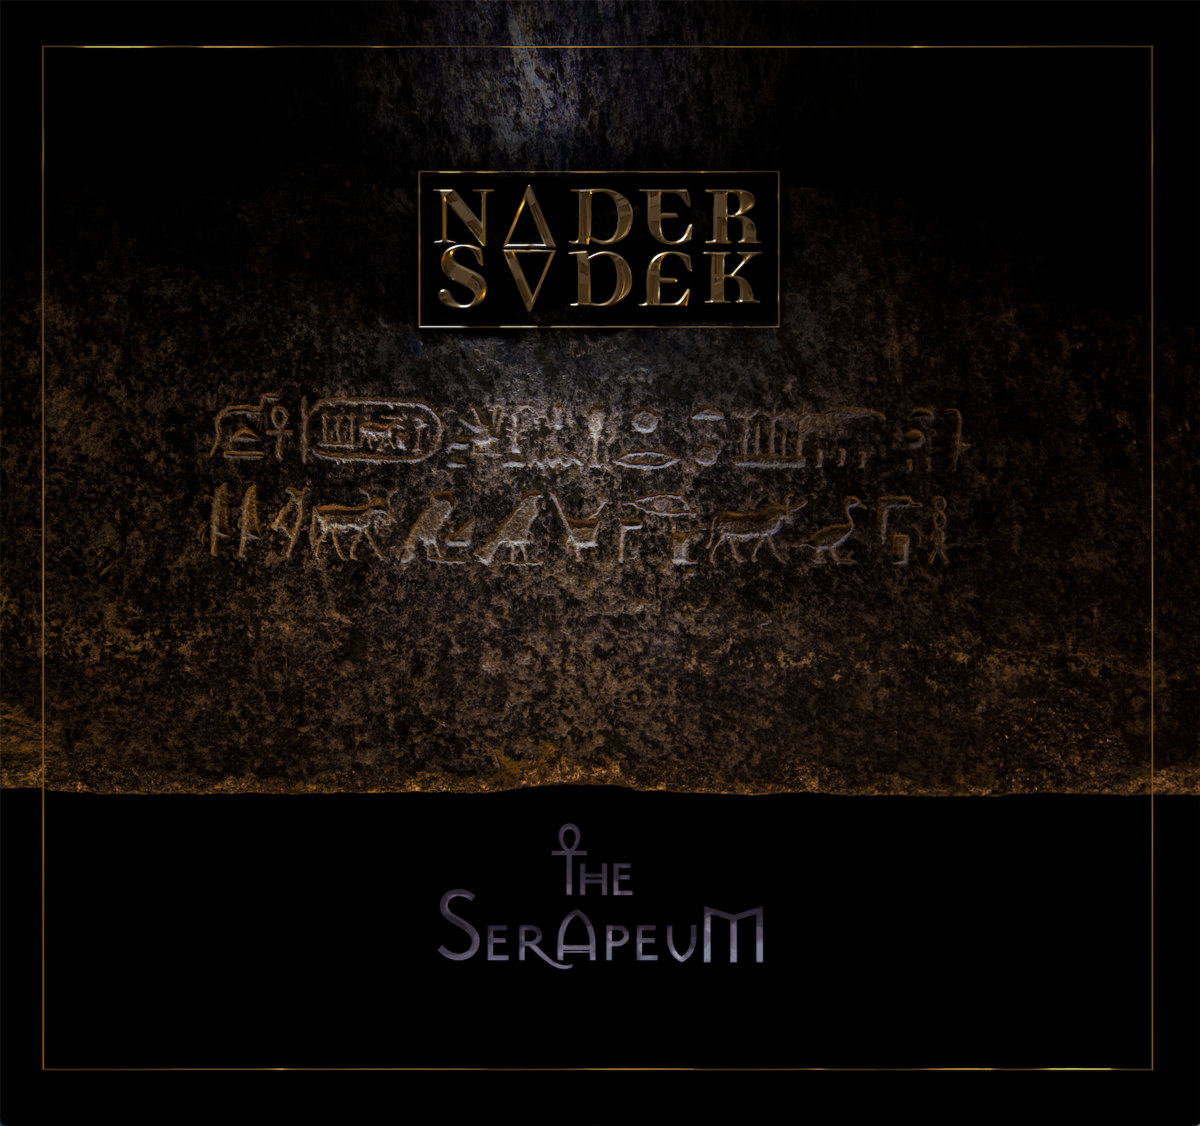 The Serapeum Nader Sadek Cover Artwork